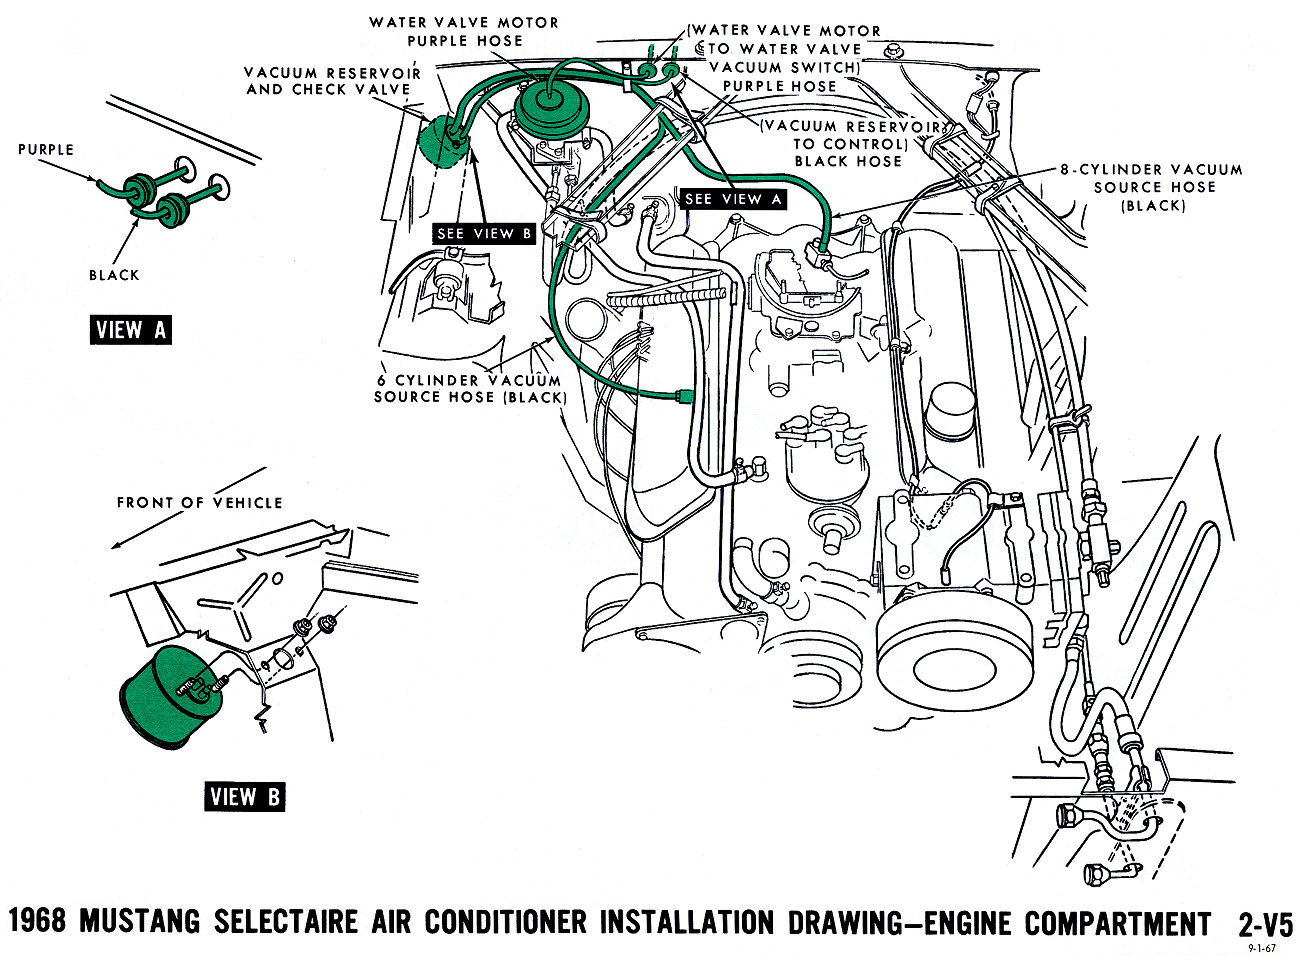 1968 Mustang Vacuum Diagrams on 1970 mustang mach 1 wiring diagram